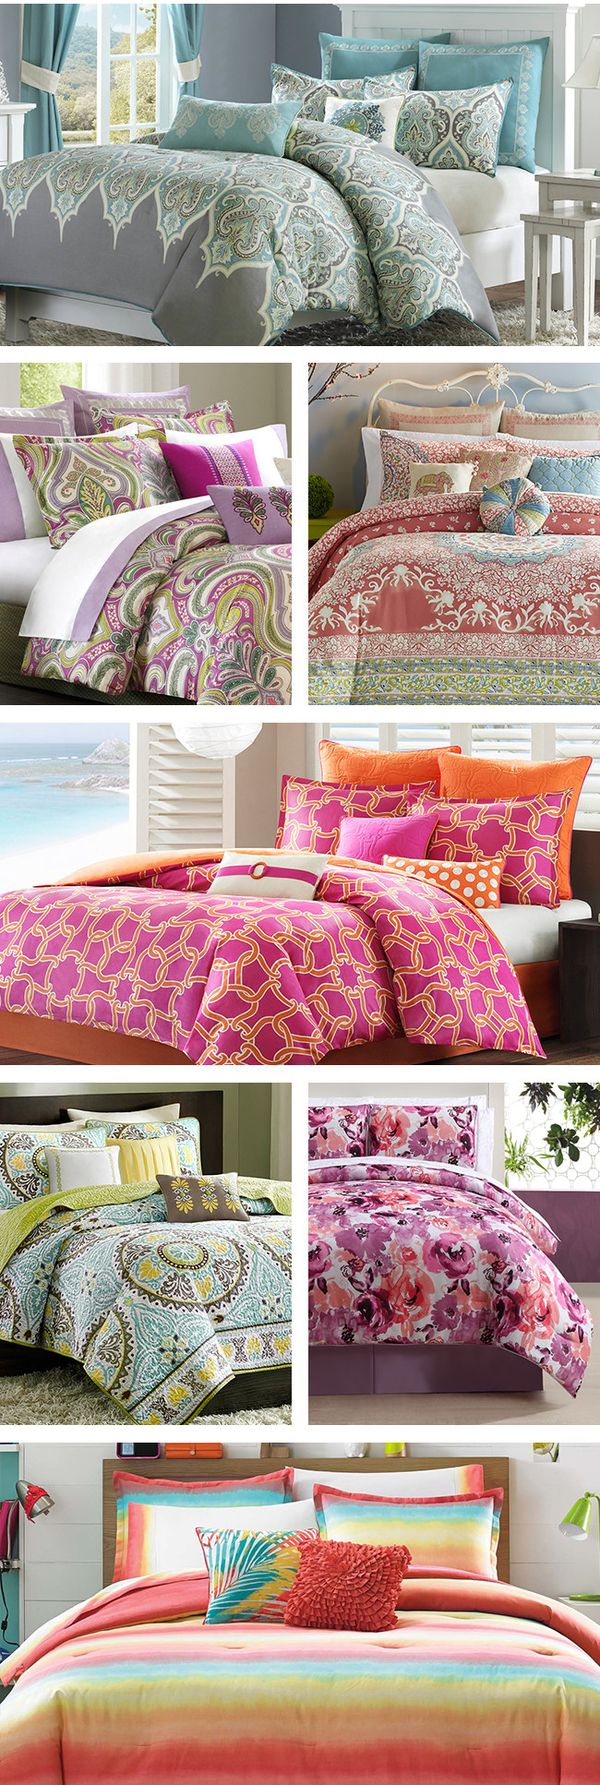 No matter your bedroom's style, we have the perfect bedding sets and bedroom fur…